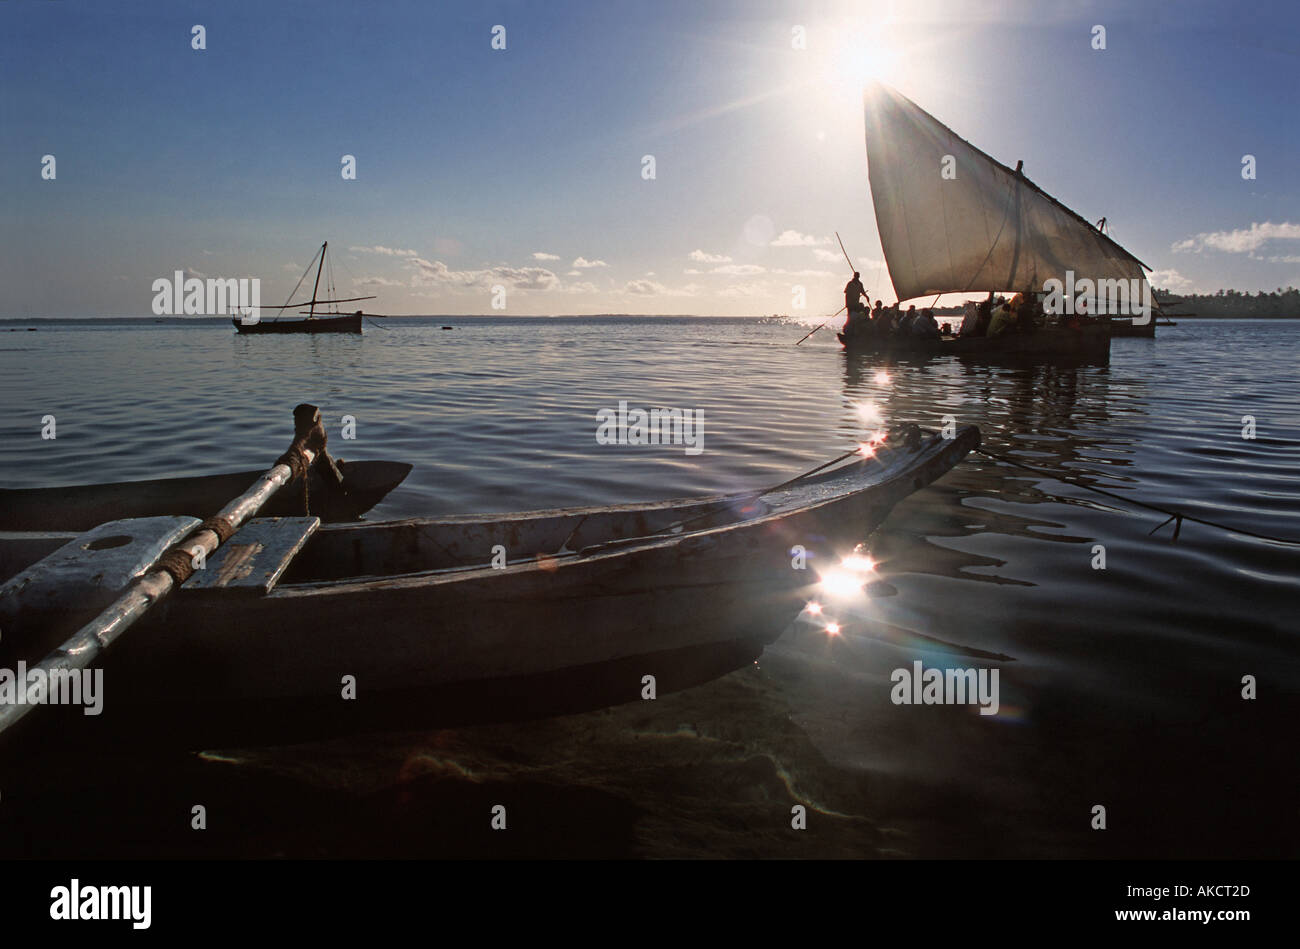 Passenger dhow ferrying people from Chole island to neighbouring Mafia island silhouetted against the rising sunStock Photo